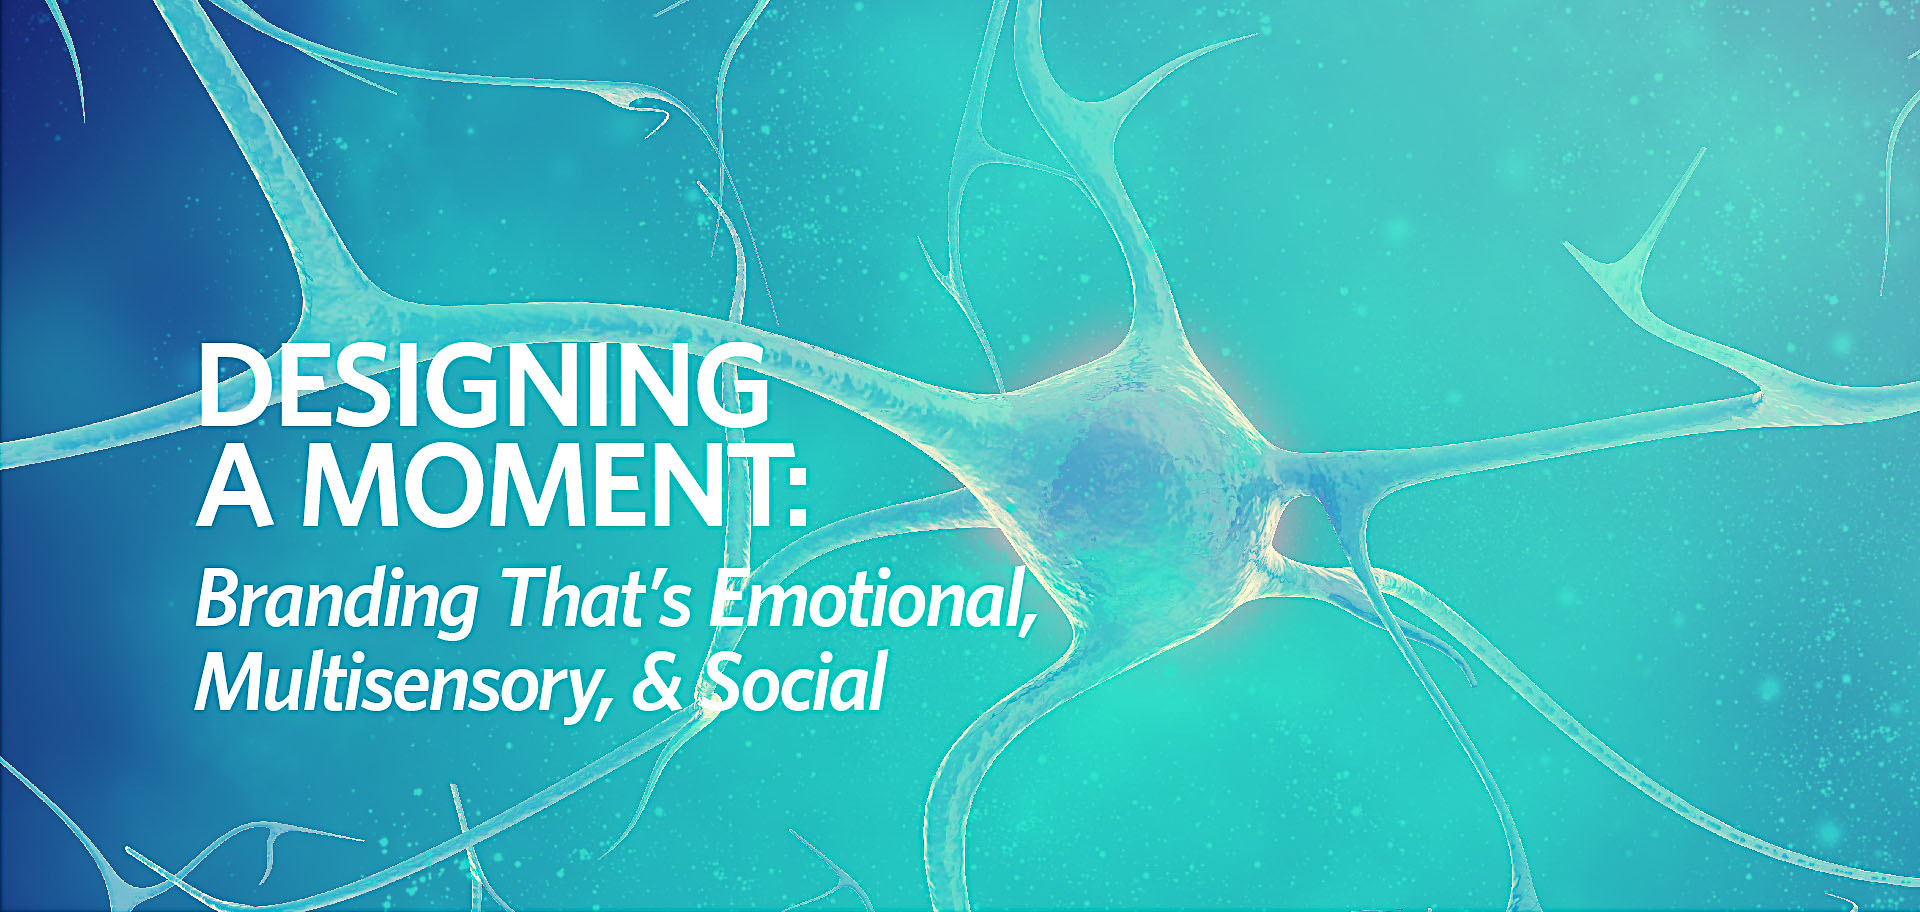 Designing a moment branding emotional multisensory social, Kettle Fire Creative blog moment Designing a Moment: Branding that's Emotional, Multisensory, Social fi